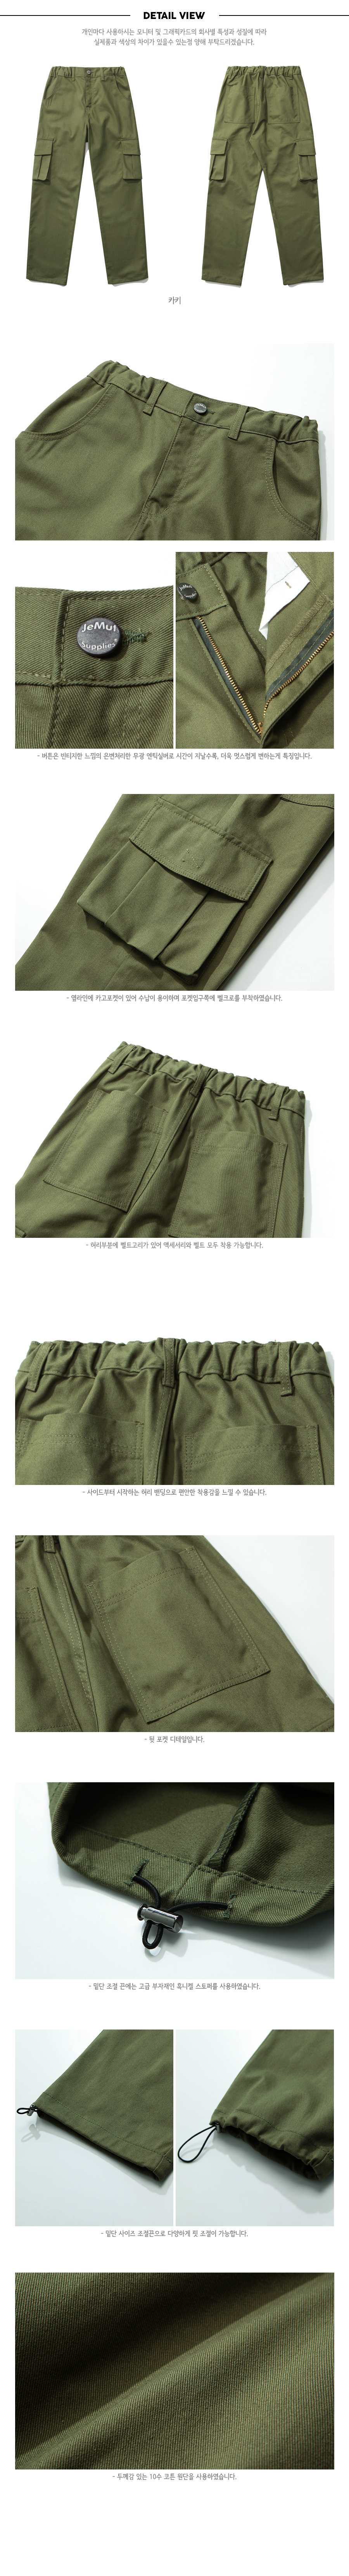 20181017_youth_wide_cargo_pants_khaki_yh.jpg